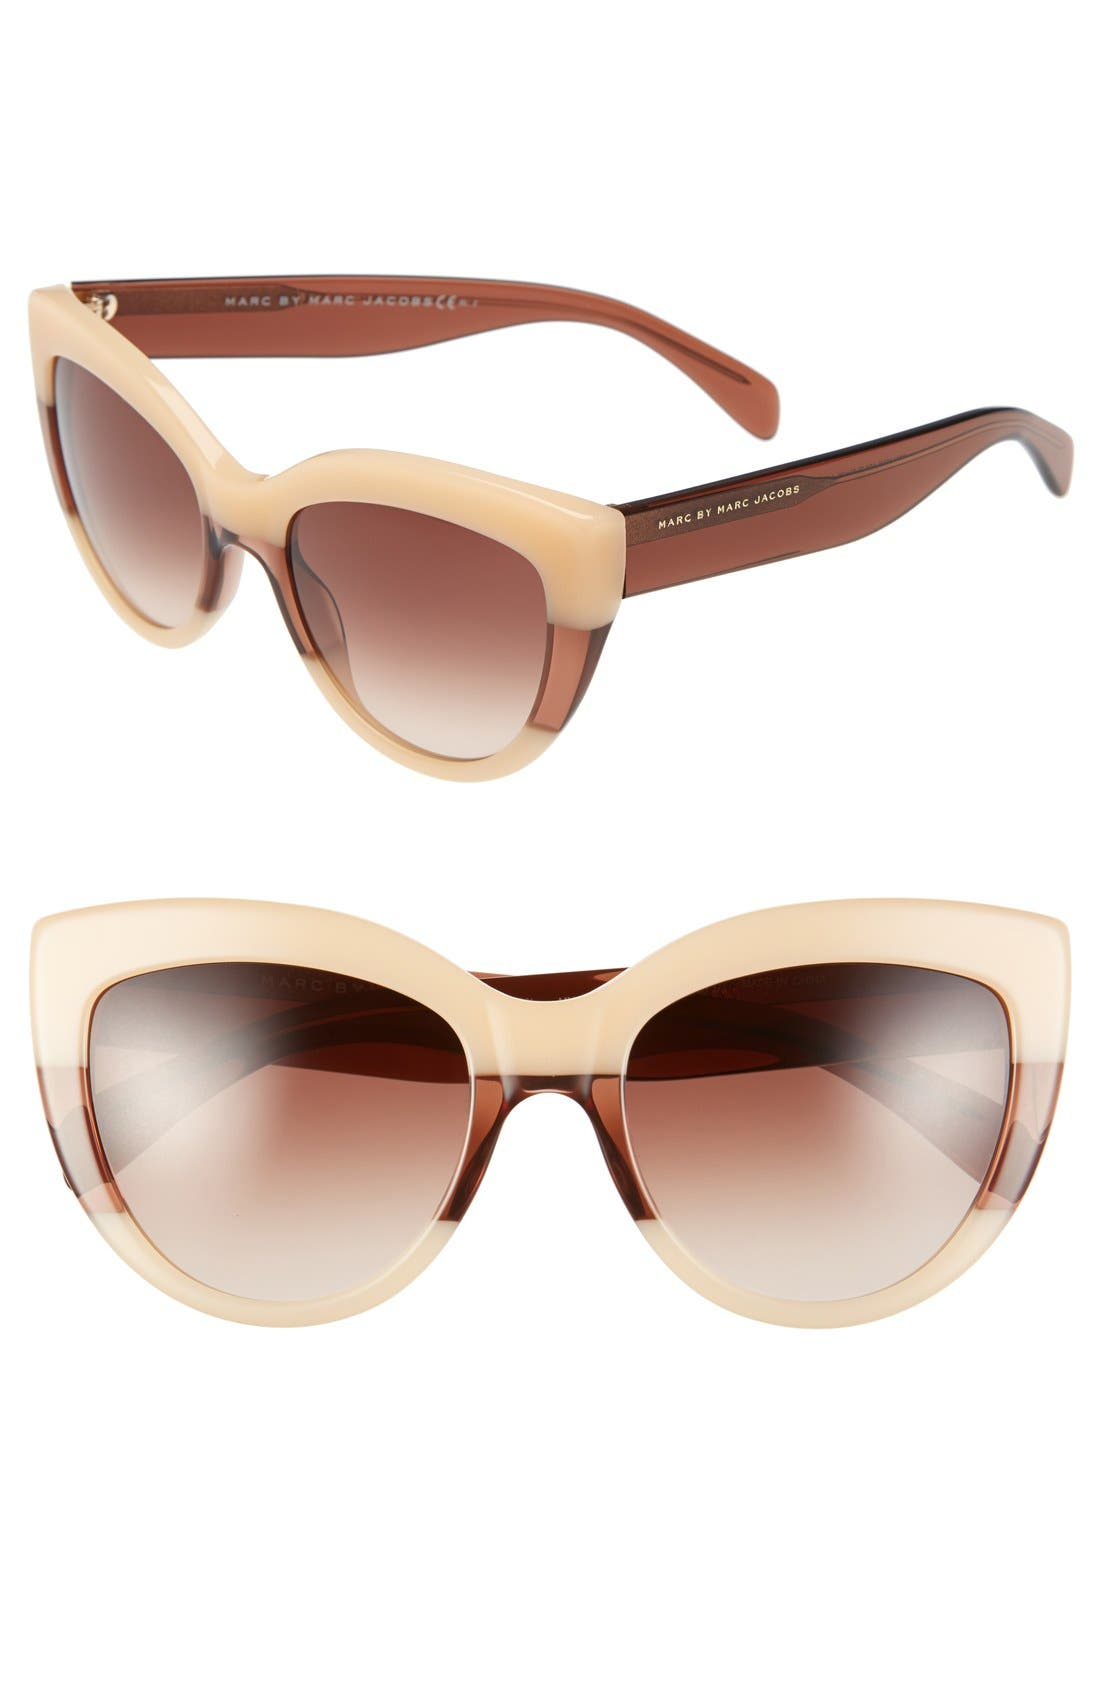 Main Image - MARC BY MARC JACOBS 53mm Cat Eye Sunglasses